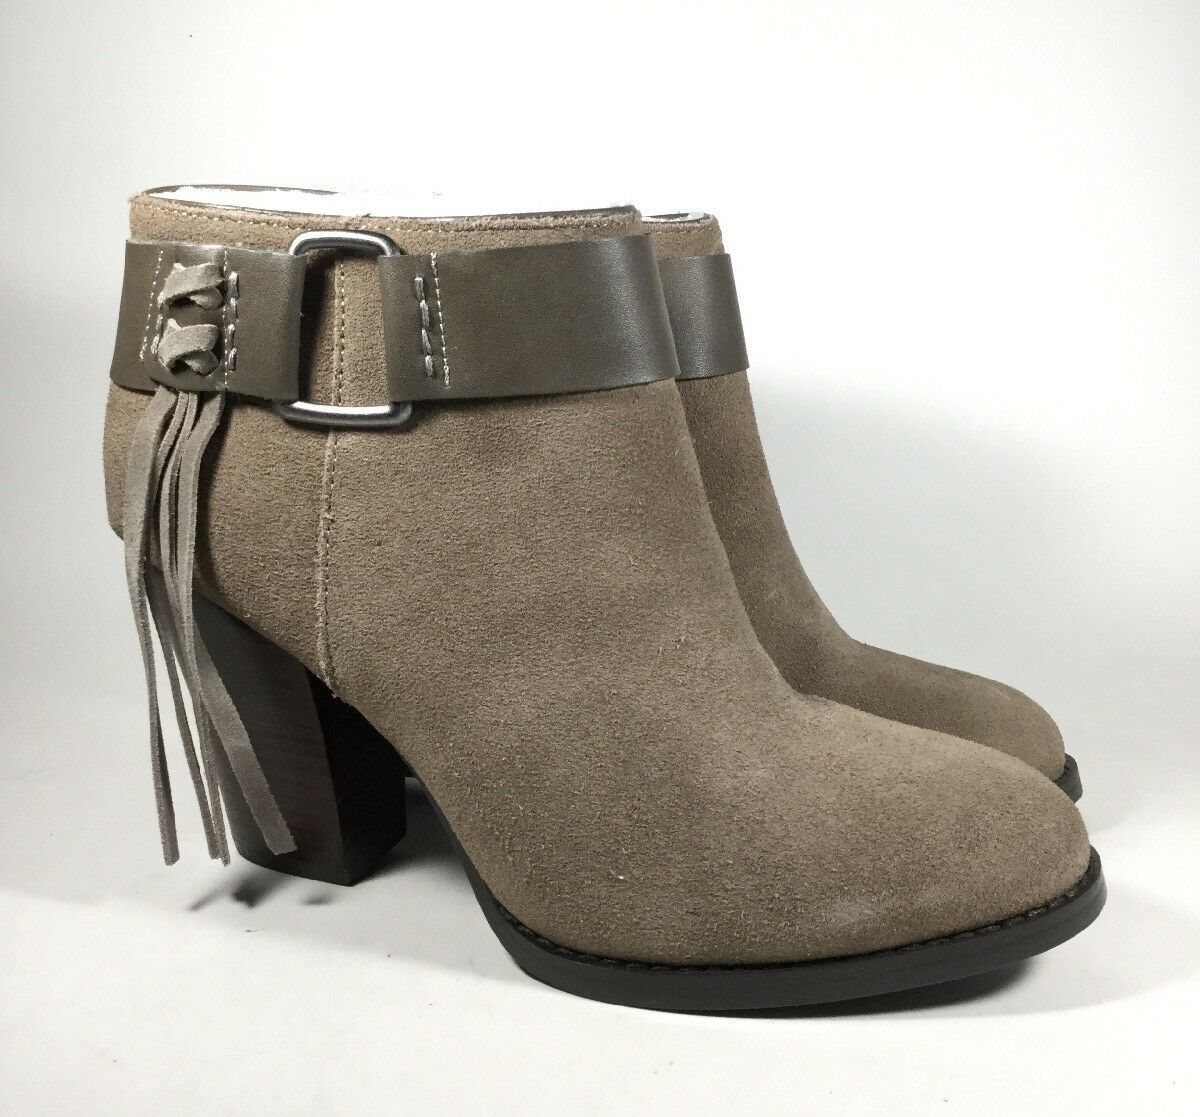 M3853 New Women's Kensie Massey Taupe Ankle Bootie US 8.5 M